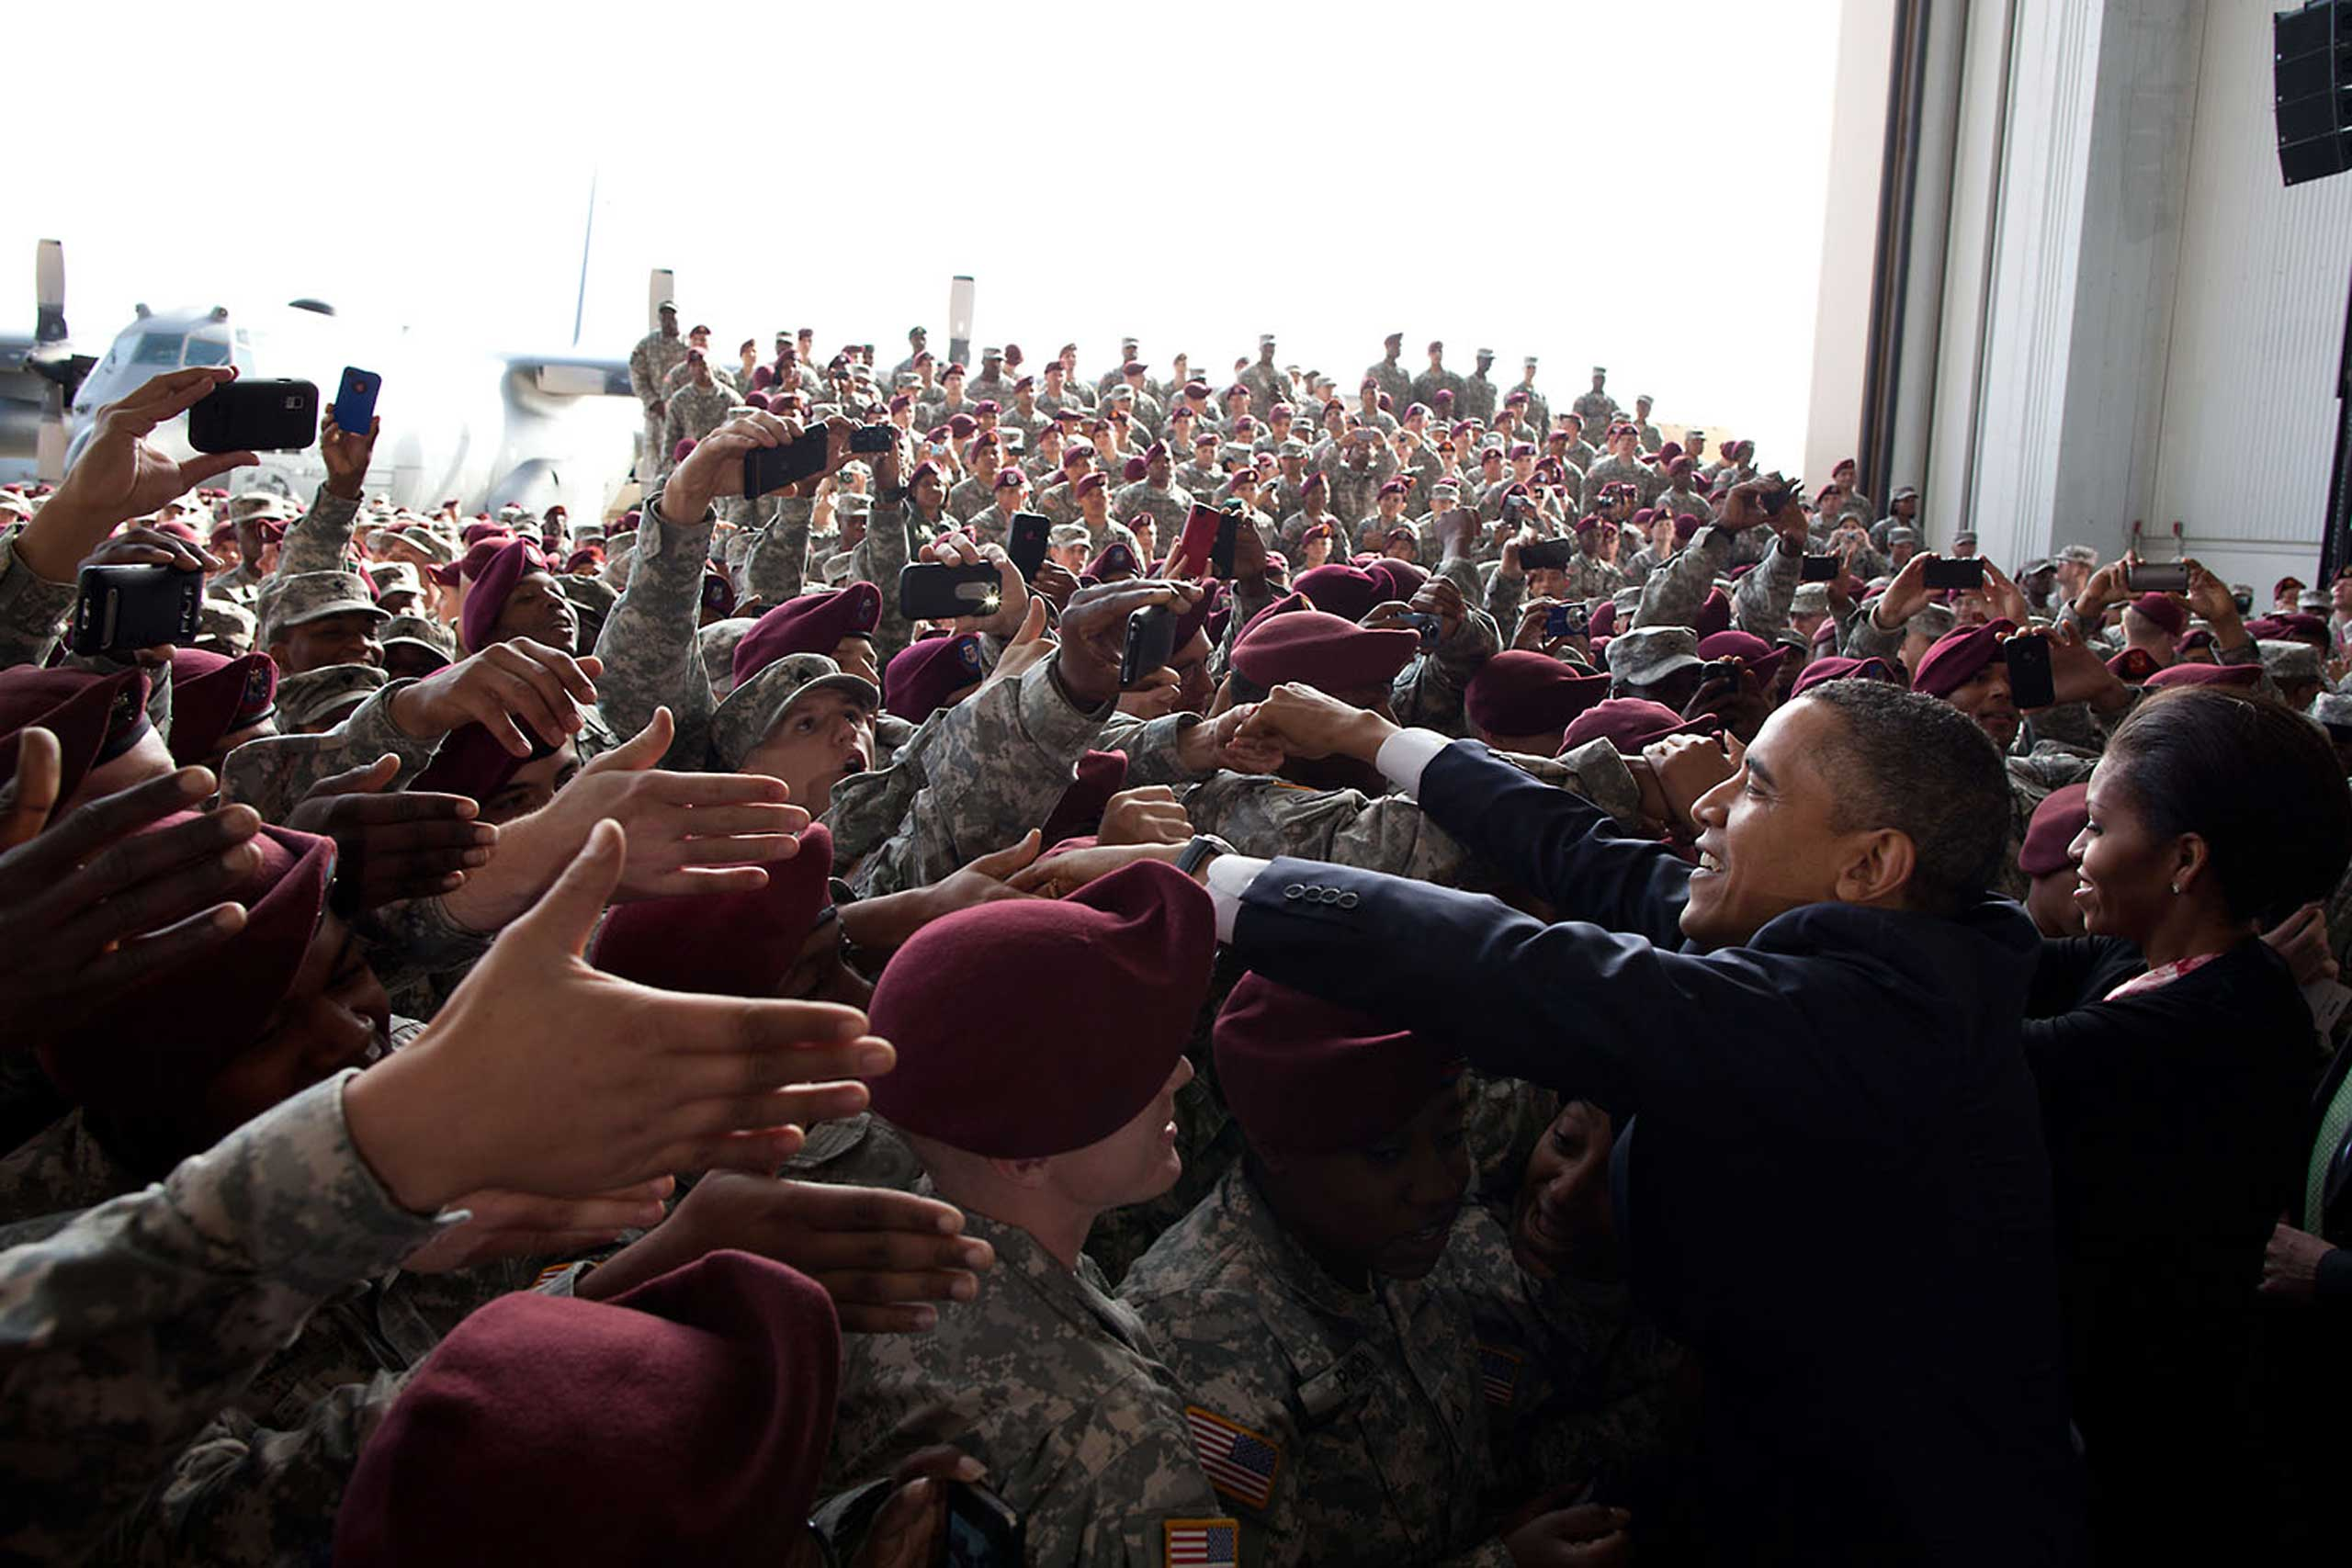 The President and First Lady greet troops following remarks to mark the end of America's war in Iraq, at Pope Army Airfield, Fort Bragg, North Carolina, Dec. 14, 2011.